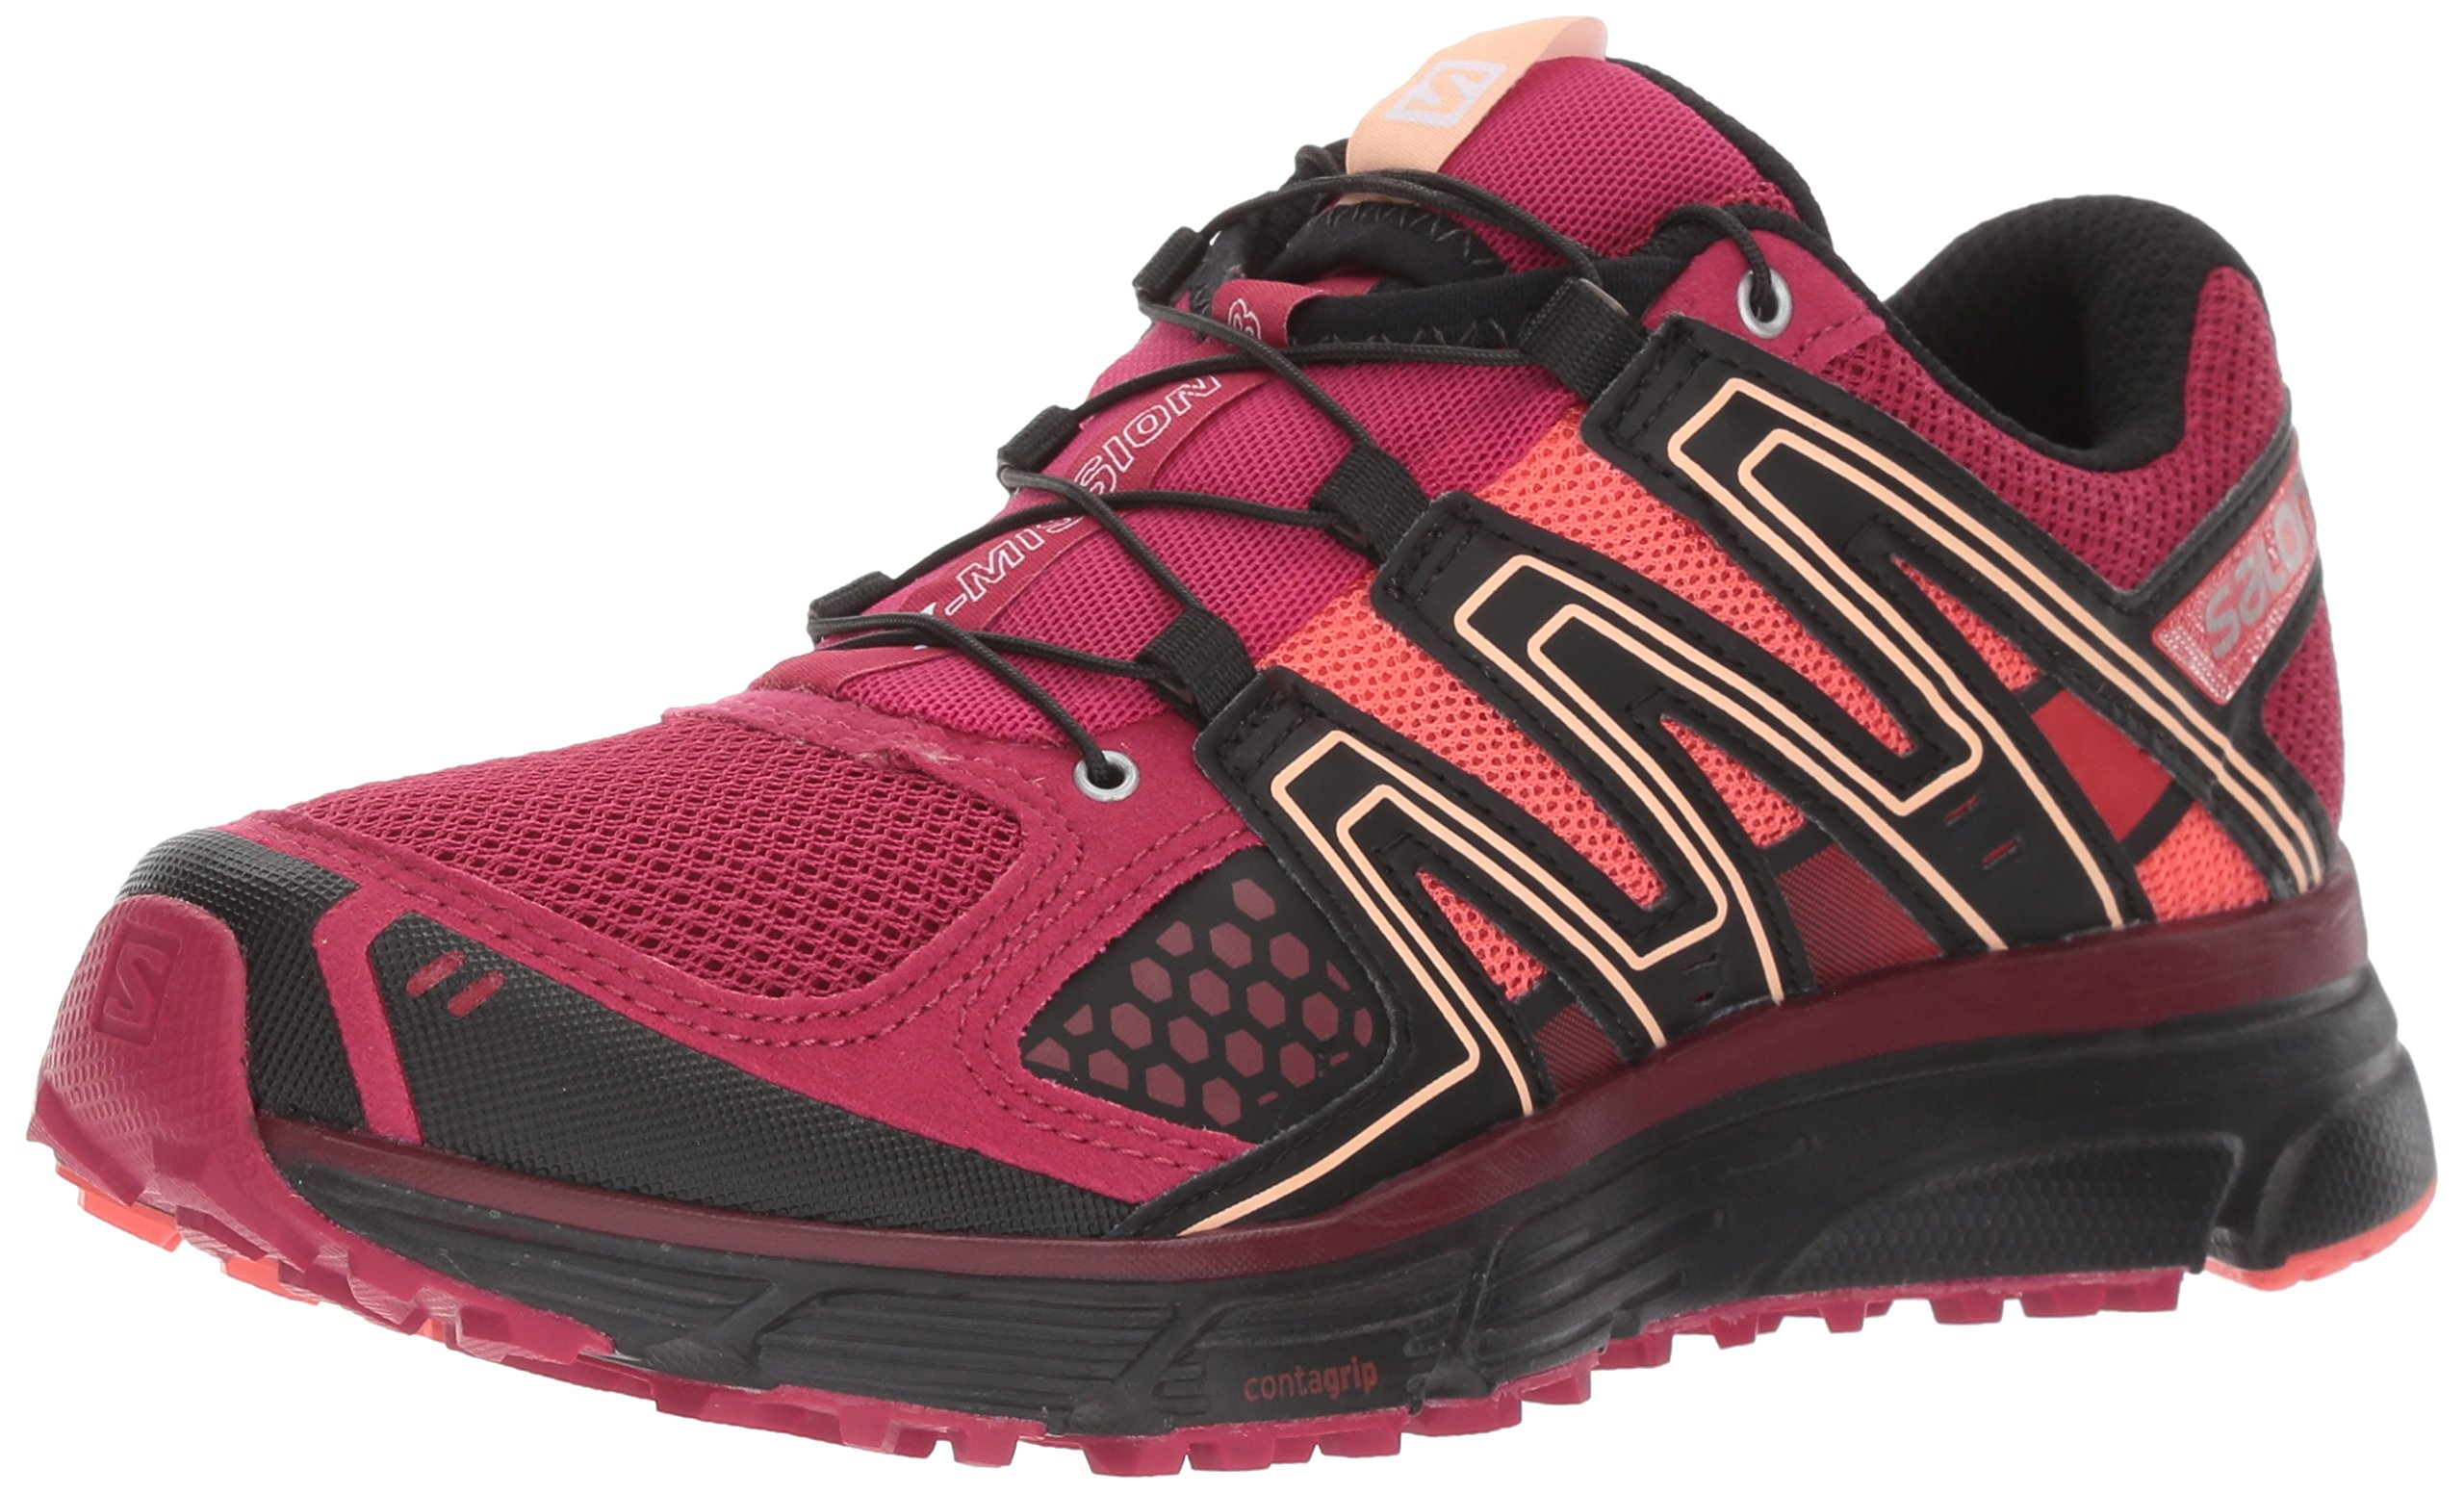 Salomon Women's X-Mission 3 W Trail Runner, Sangria/Coral Punch/Black, 7.5 M US